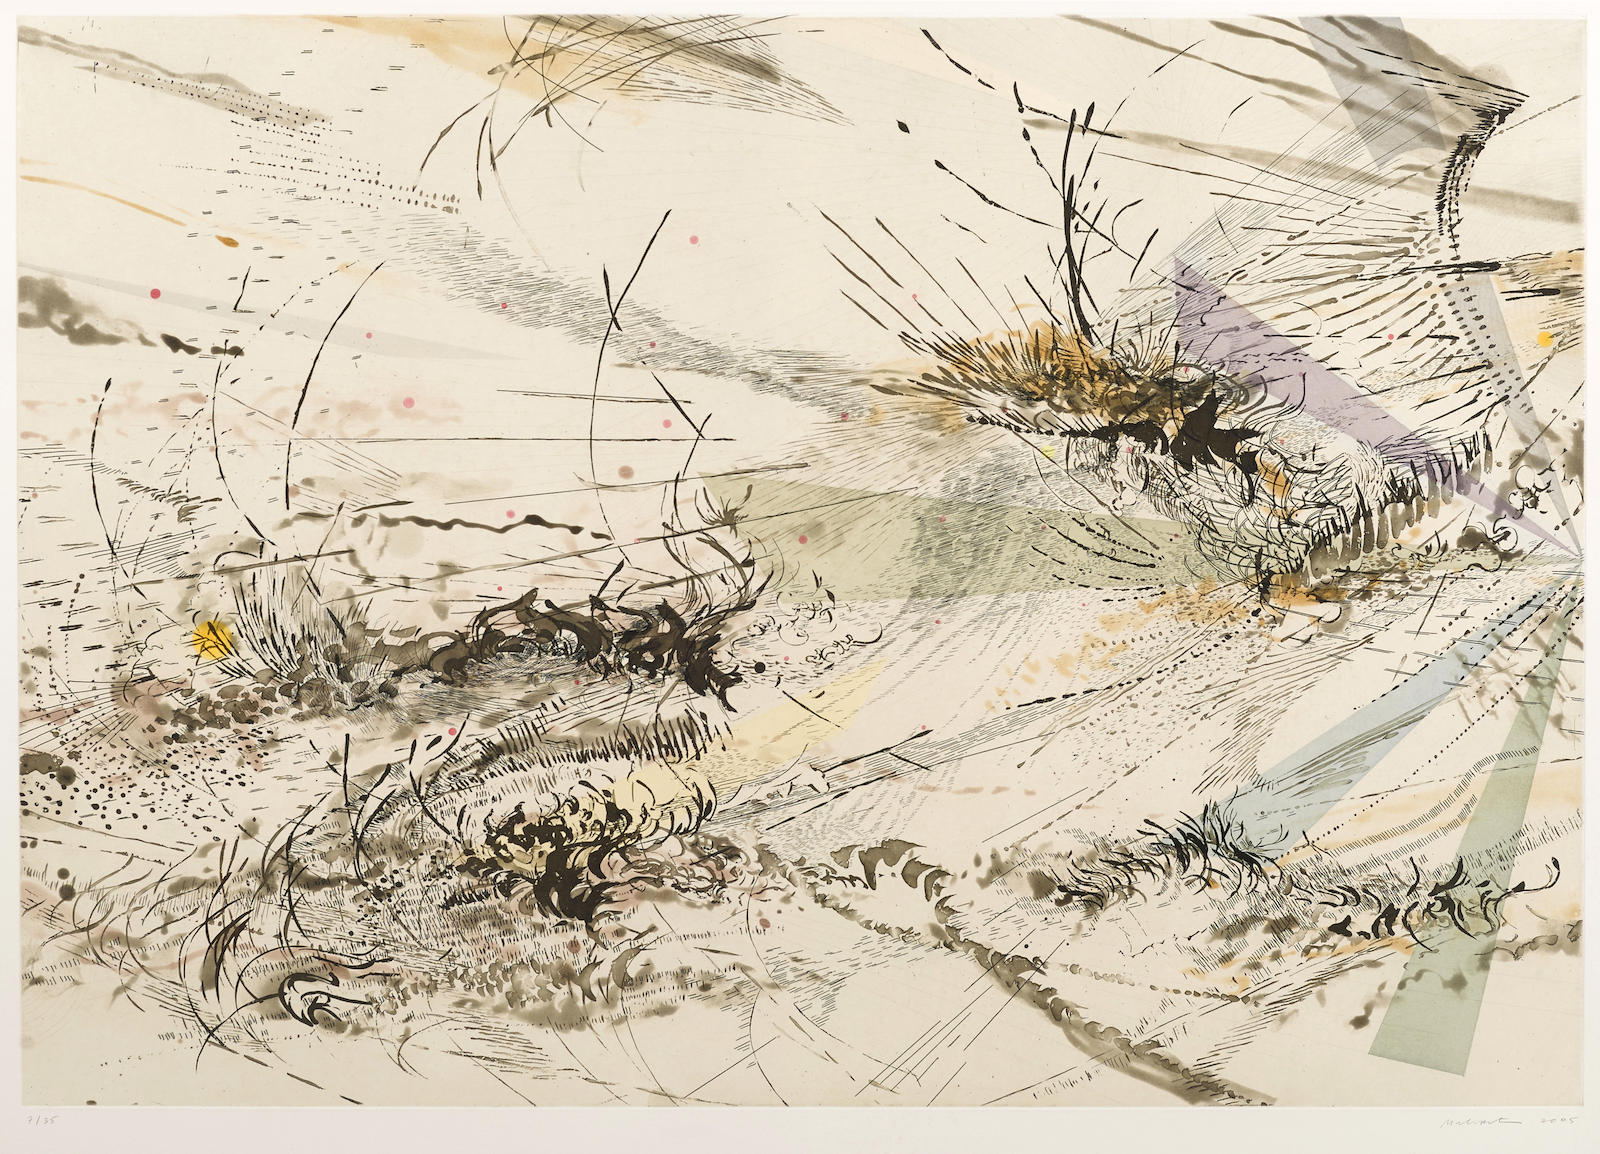 Julie Mehretu-Diffraction, 2005-2005